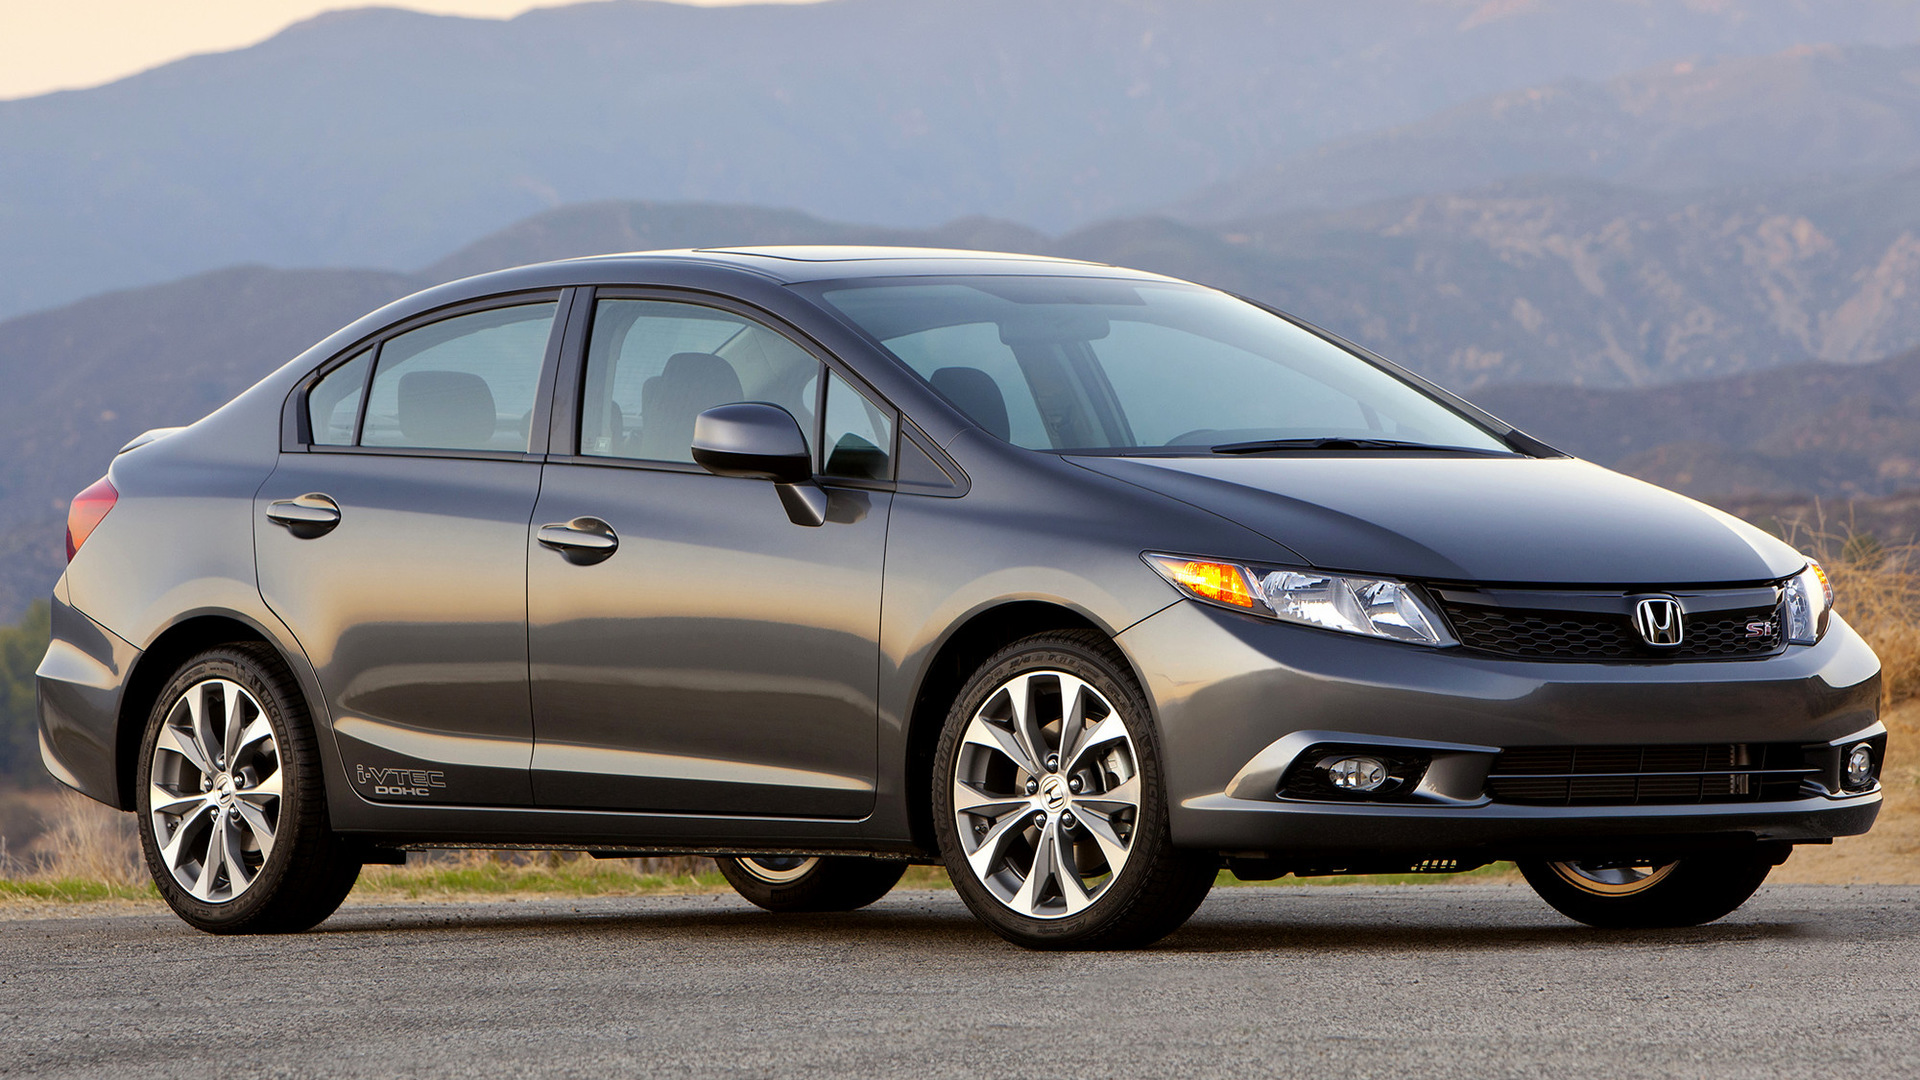 Honda Civic Si Sedan 2011 Wallpapers And Hd Images Car